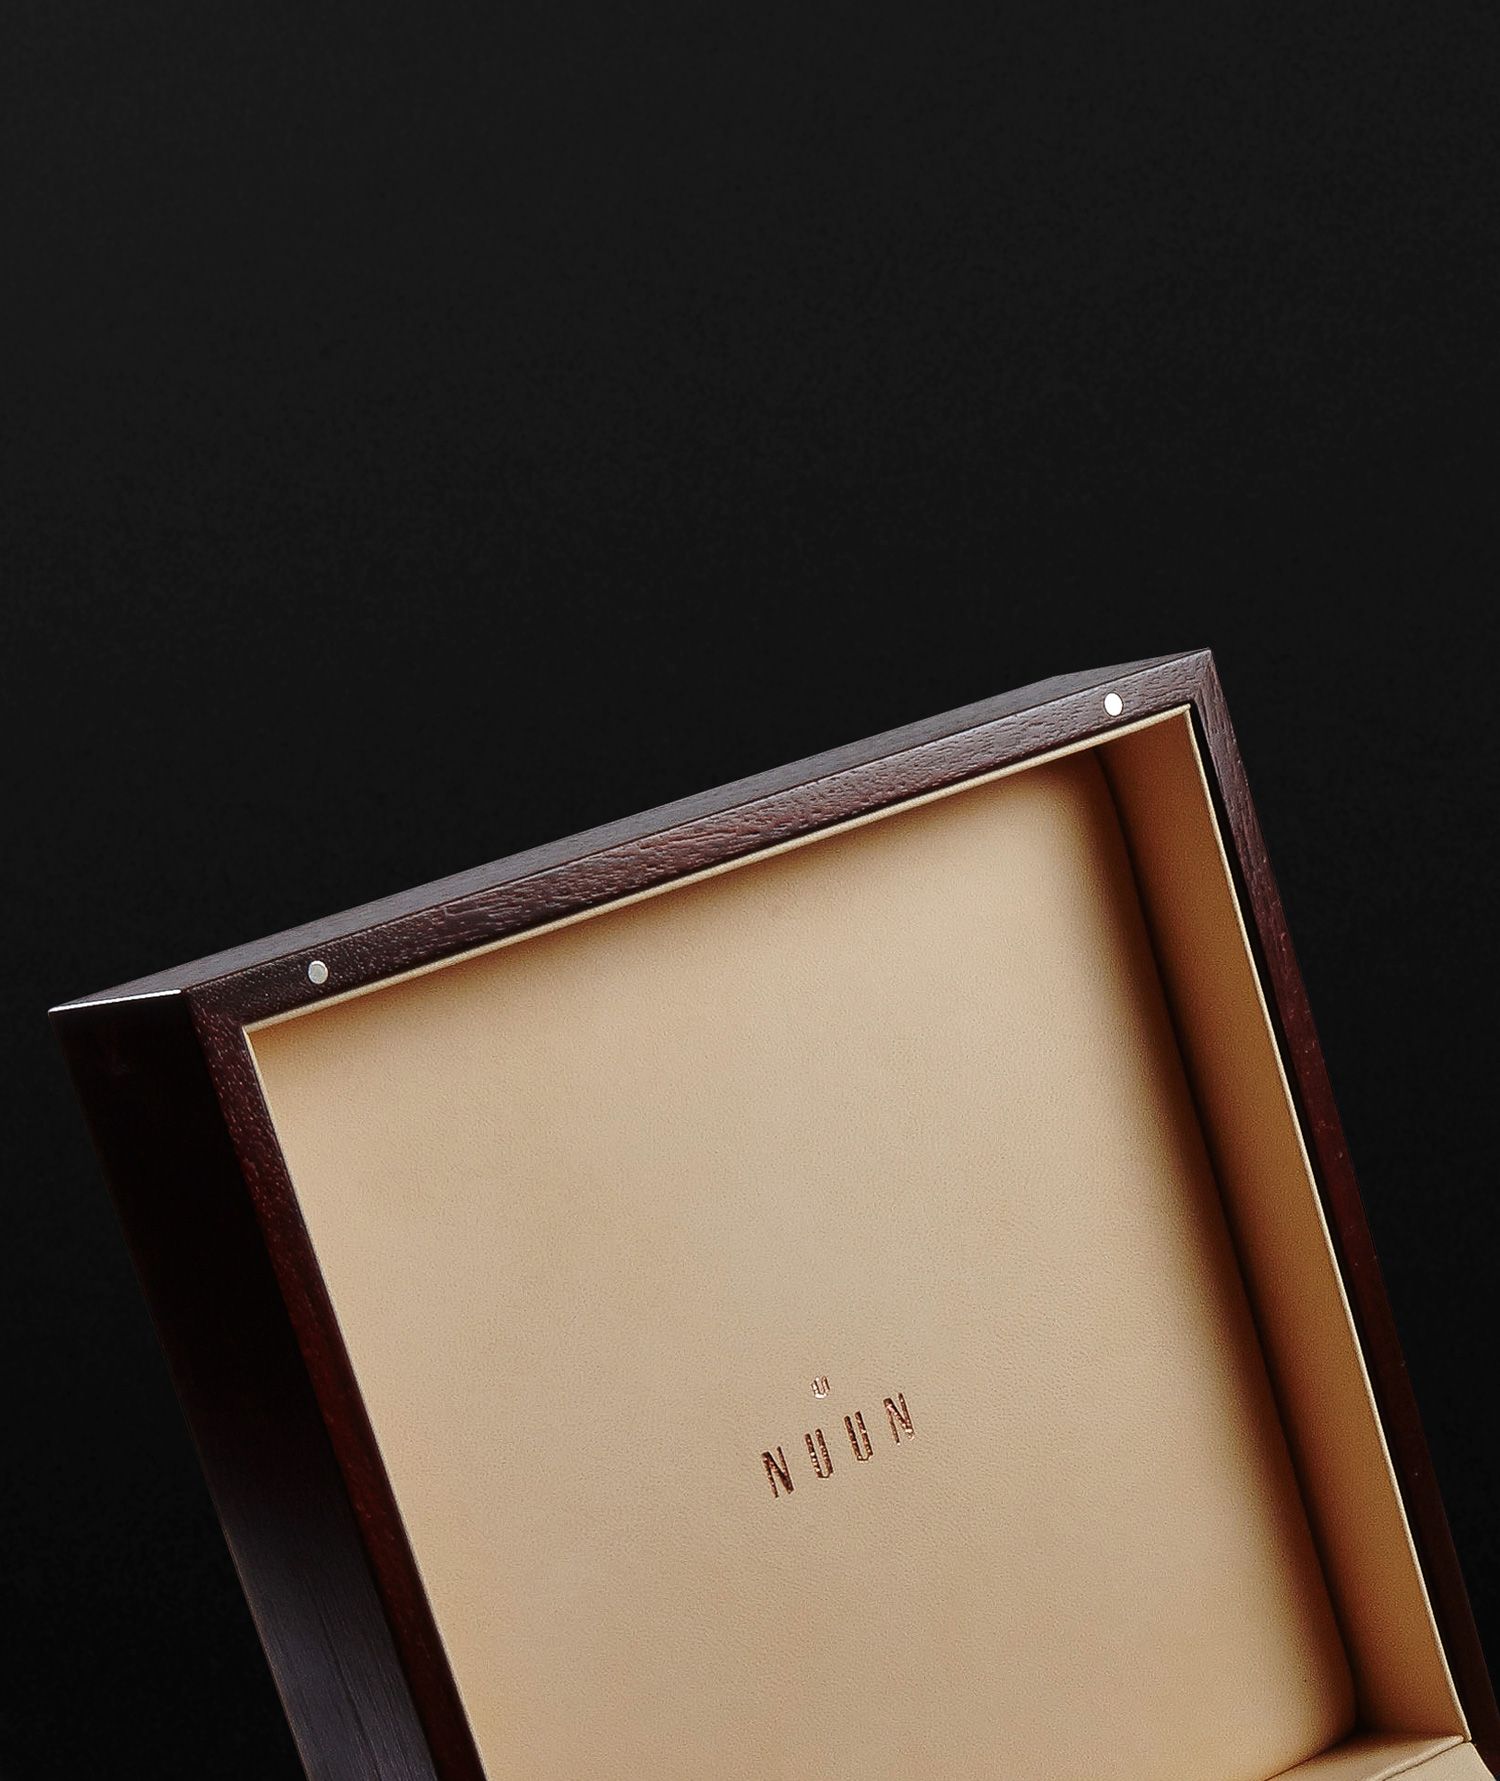 Progress Packaging Nuun Jewelery Wood Etched Luxury Retail Boxes Closure Magnets